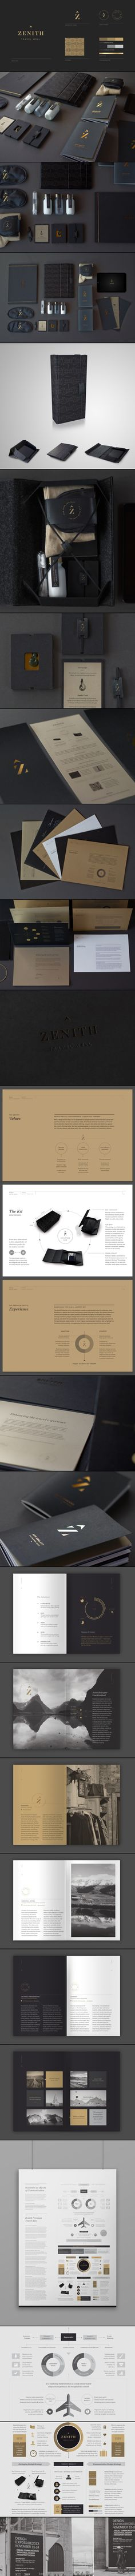 Zenith Premium Travel Kits - New Zealand | #stationary #corporate #design #corporatedesign #identity #branding #marketing < repinned by www.BlickeDeeler.de | Visit our website: www.blickedeeler.de/leistungen/corporate-design